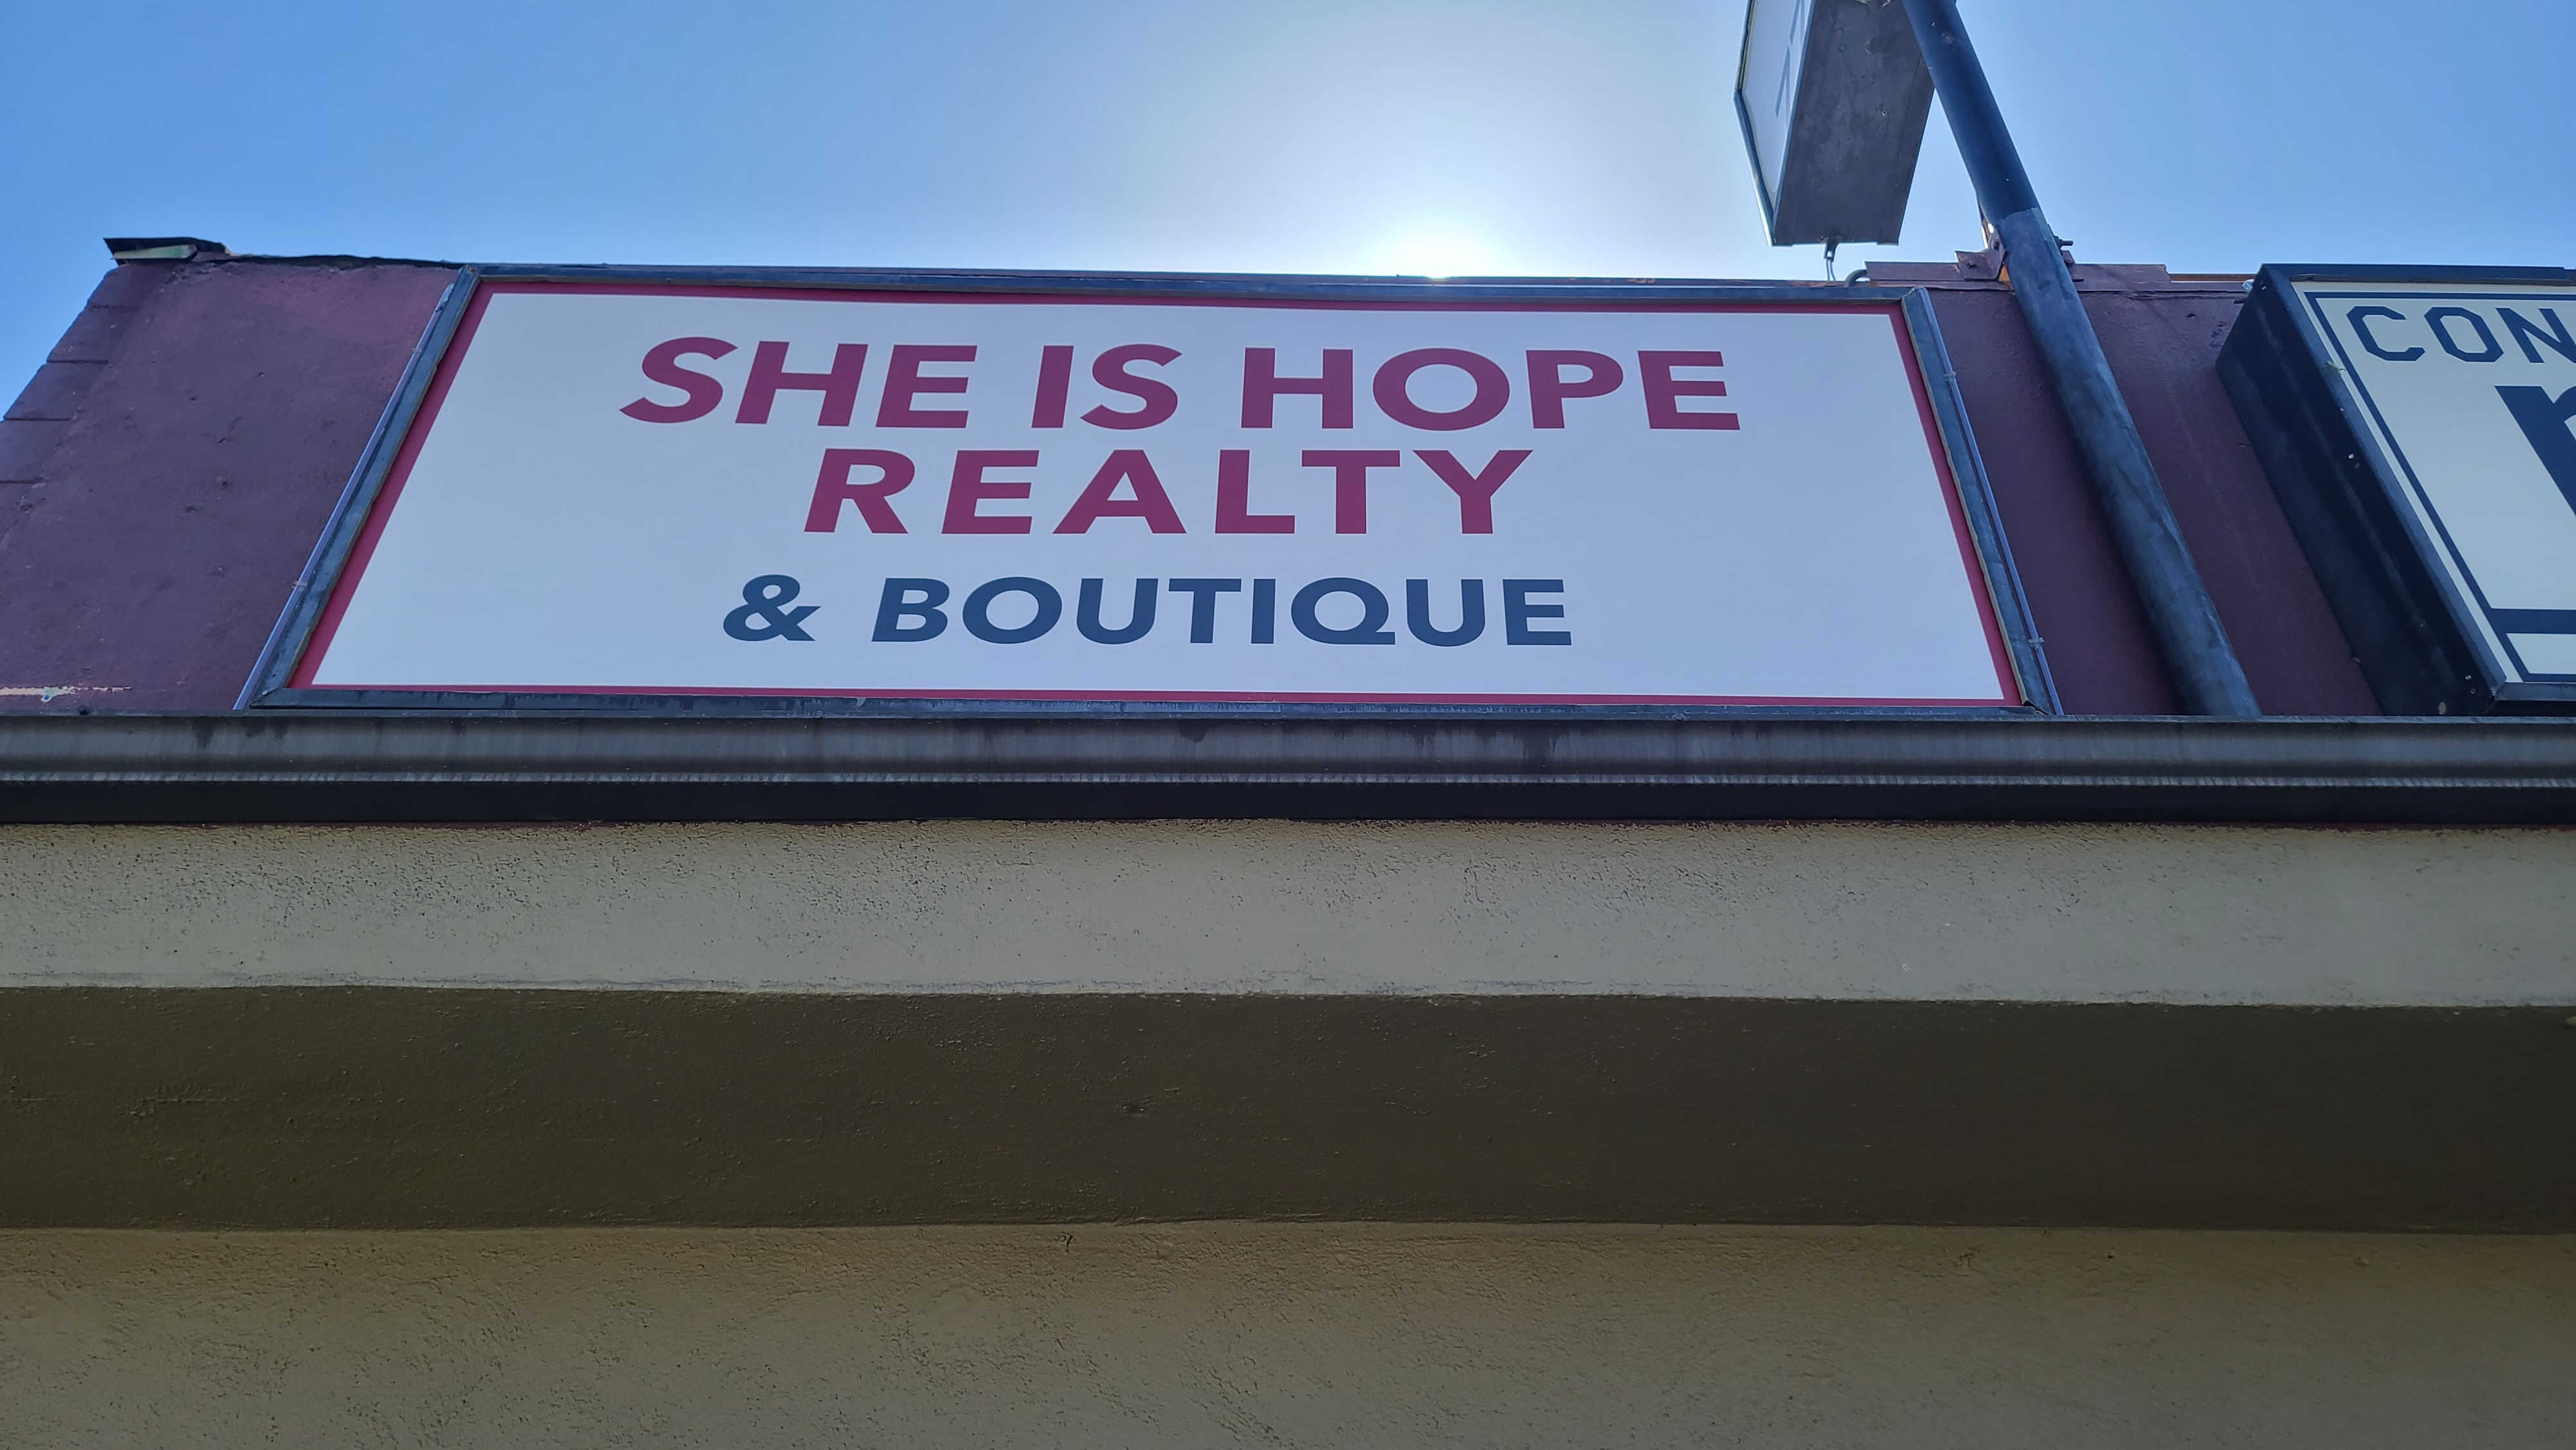 These lightbox inserts are part of storefront design package for She is Hope Realty & Boutique in Encino.